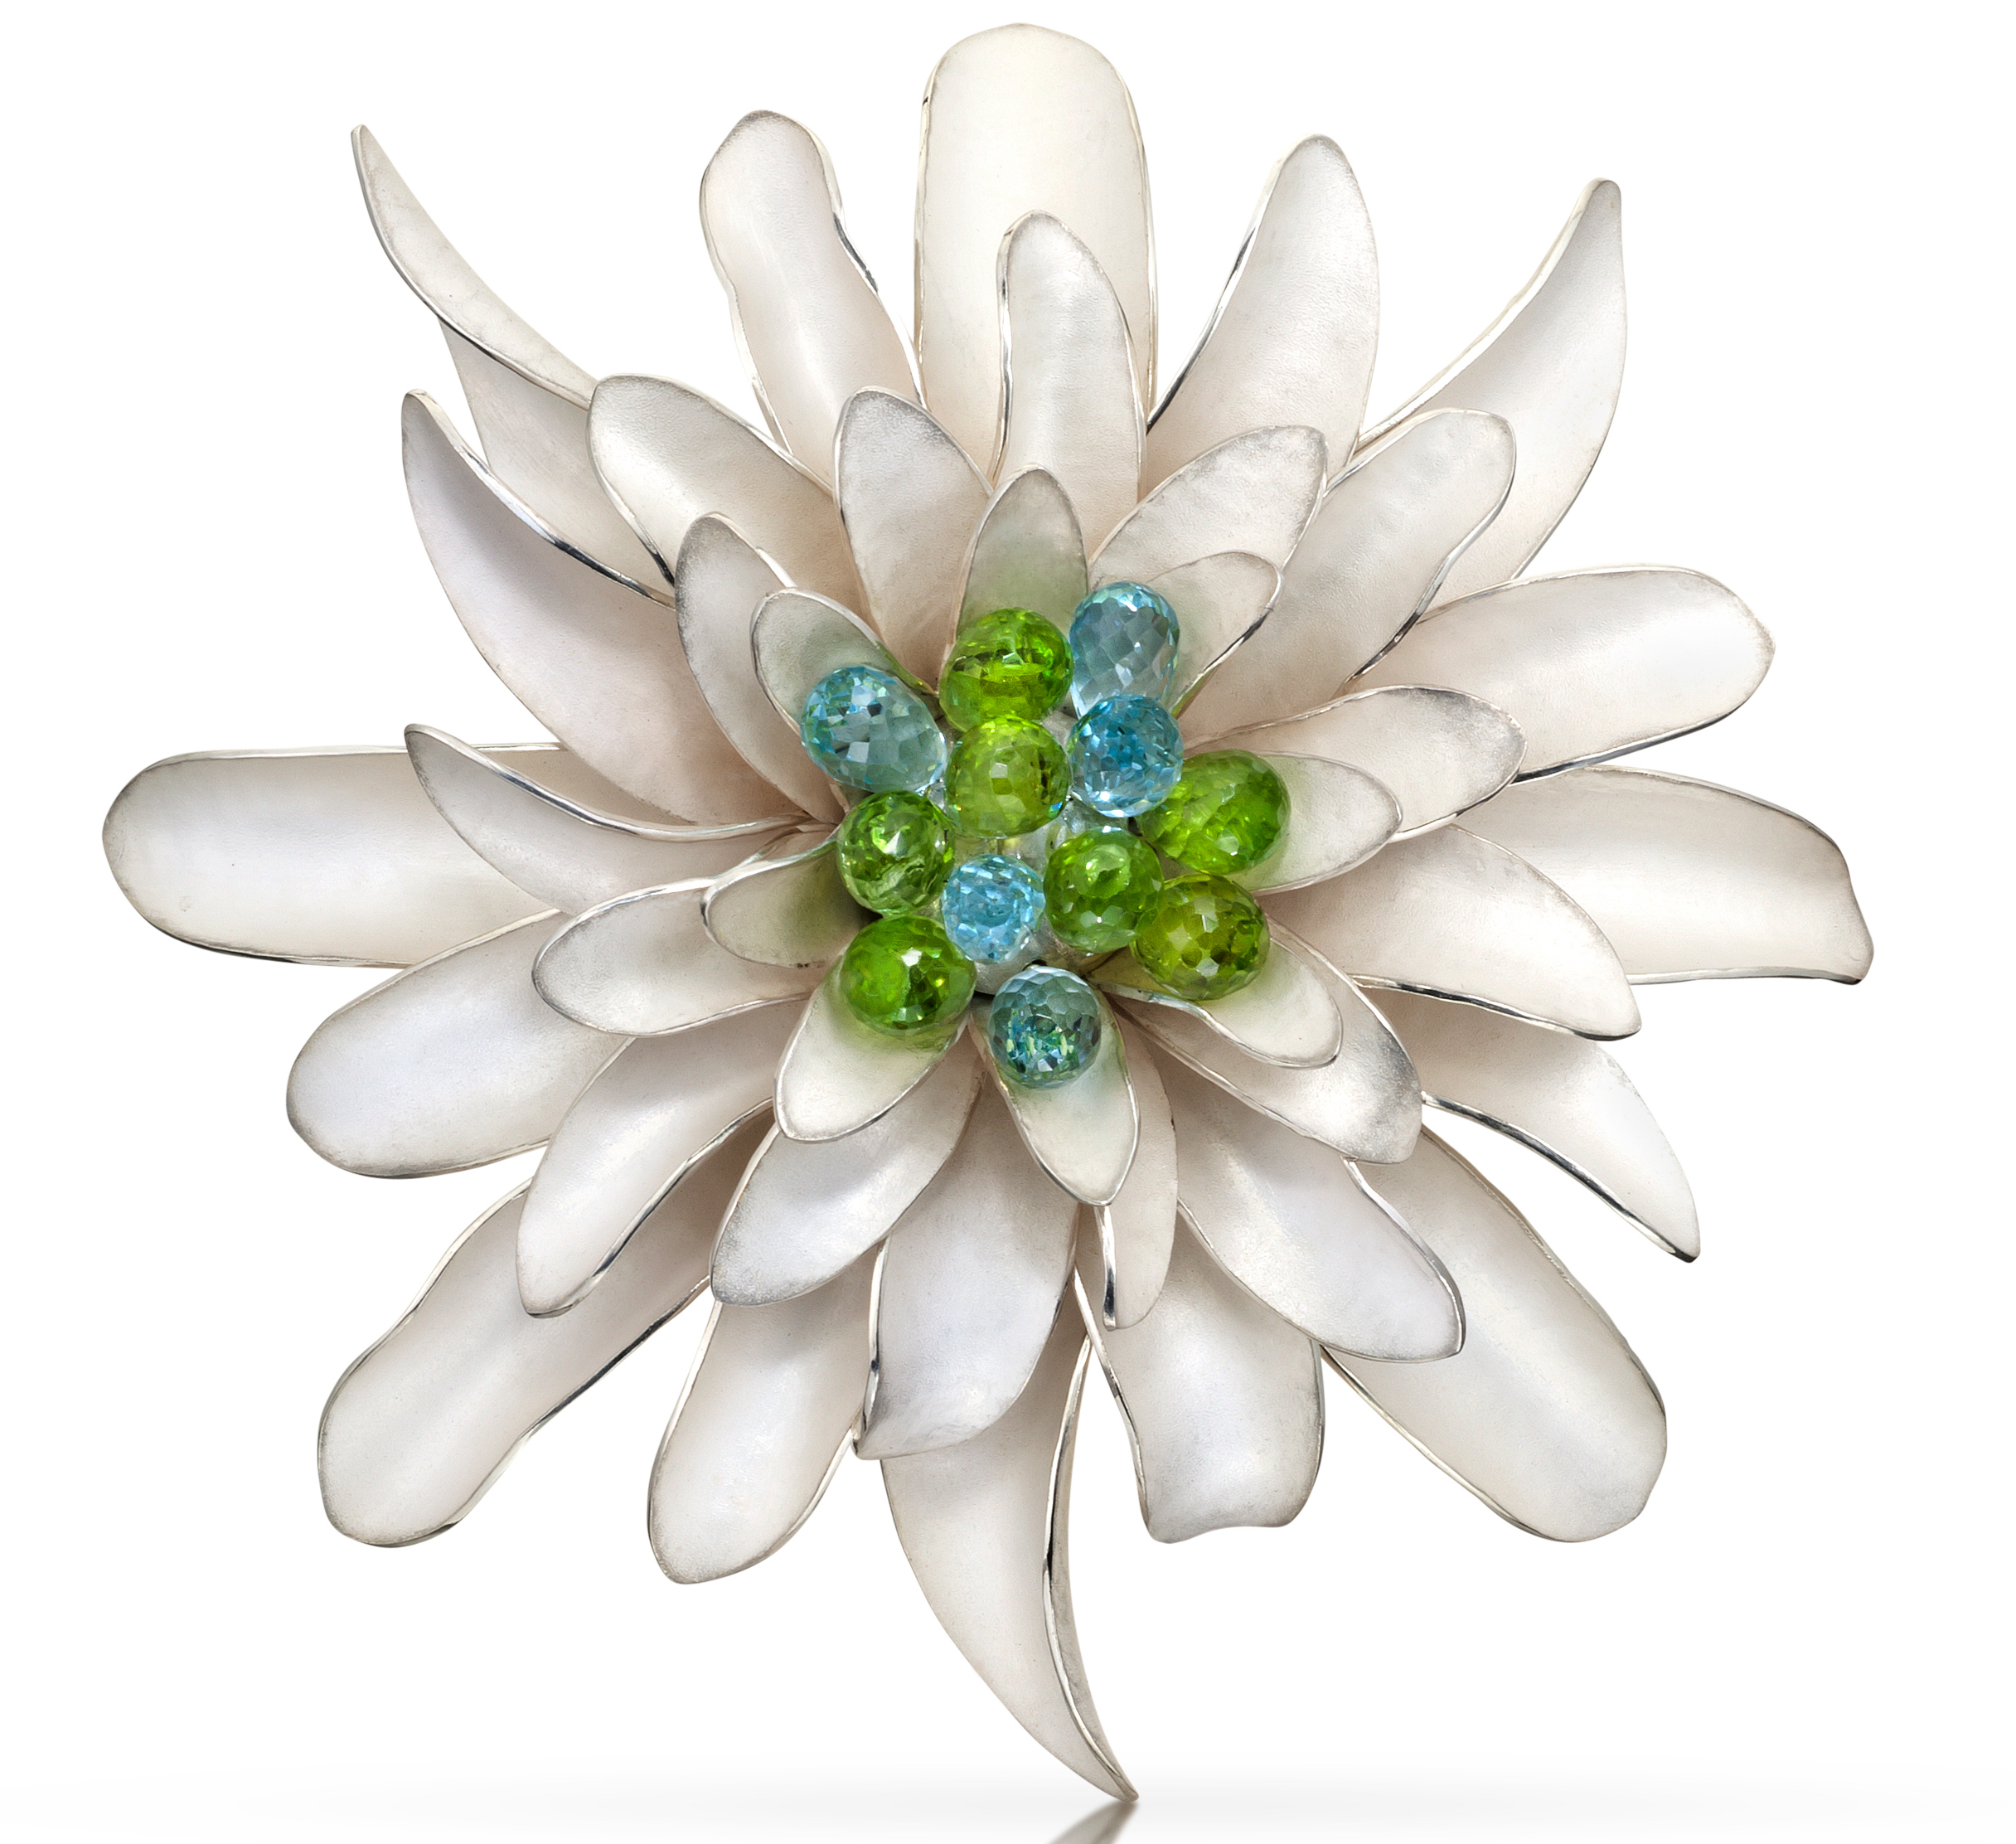 TK Metal Arts Dahlia brooch/pendant | JCK On Your Market